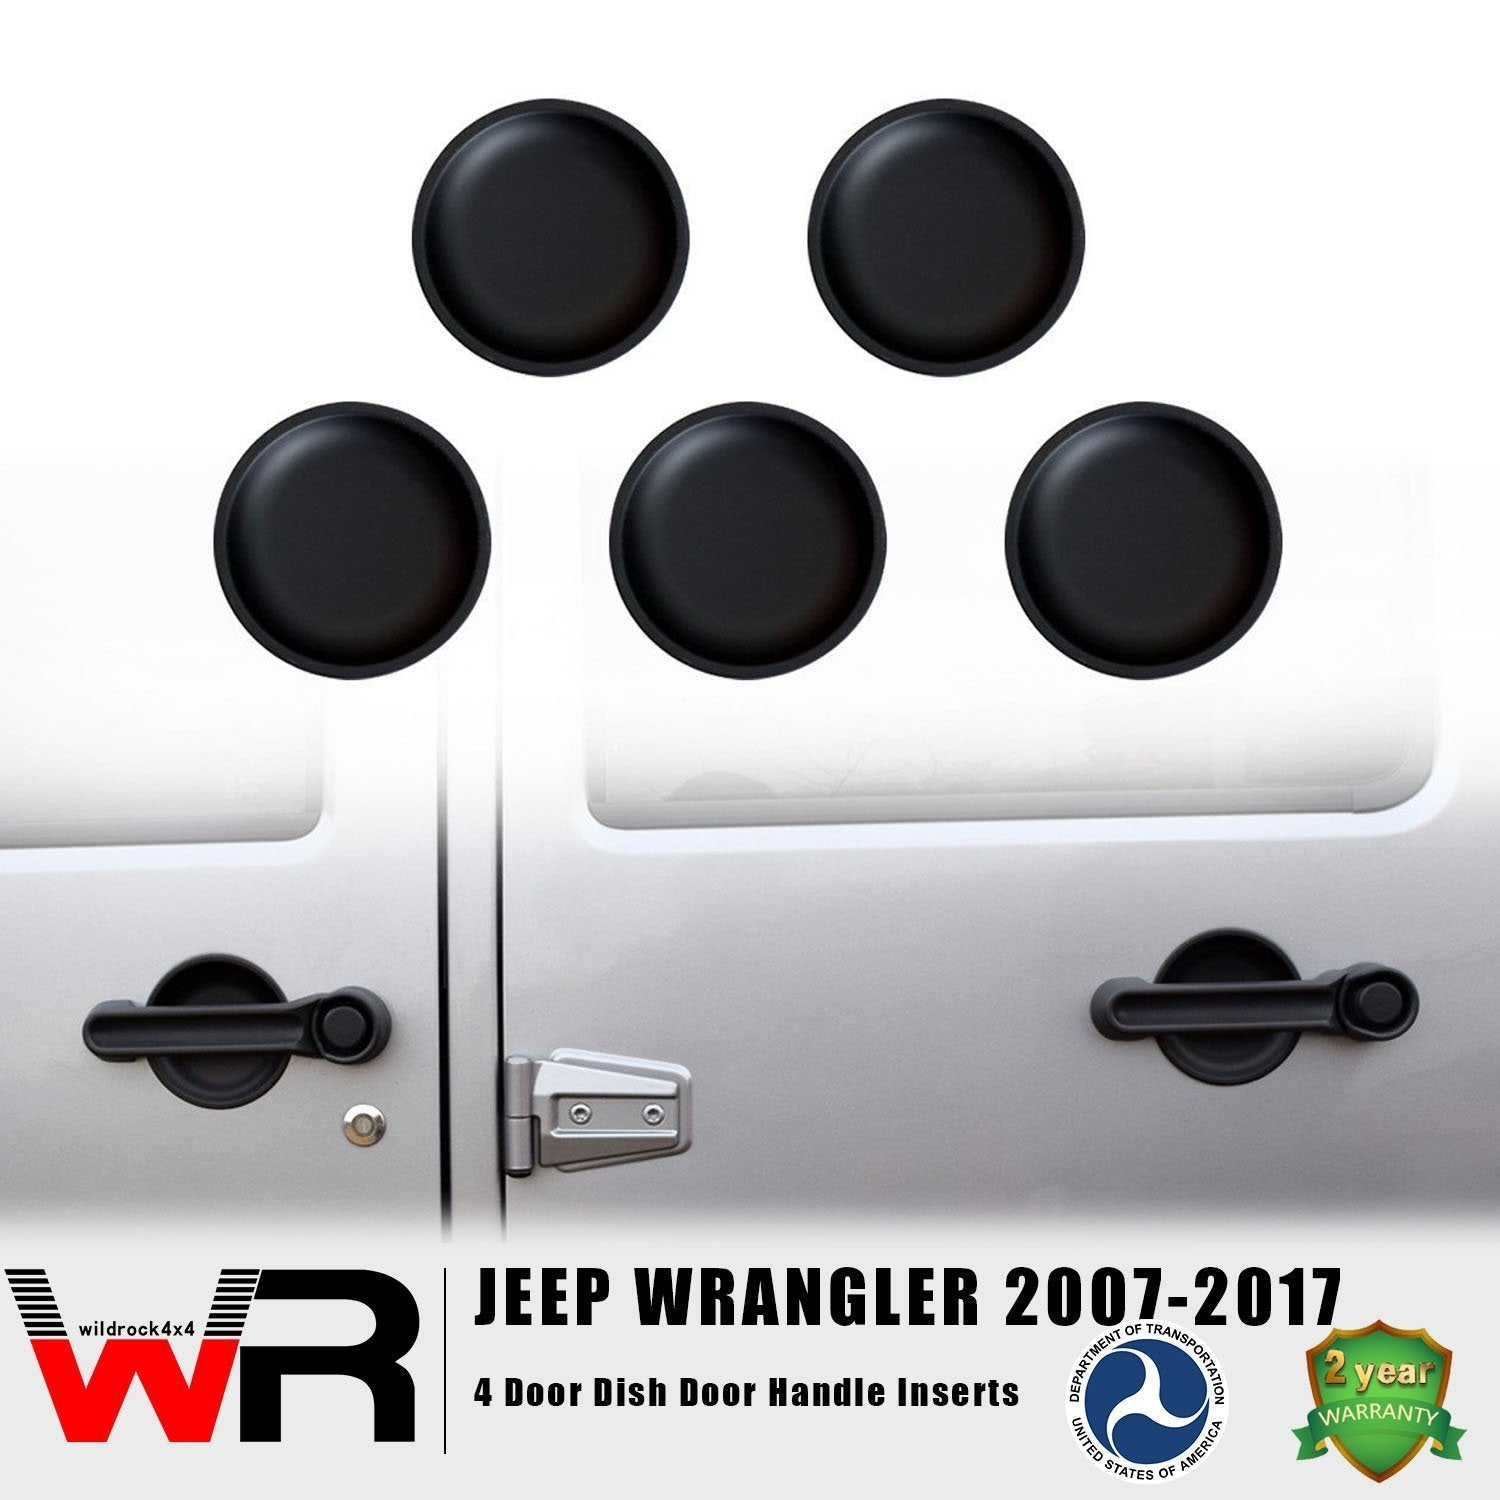 Dish Door Handle Inserts for 4 Door Jeep Wrangler JK 07-17